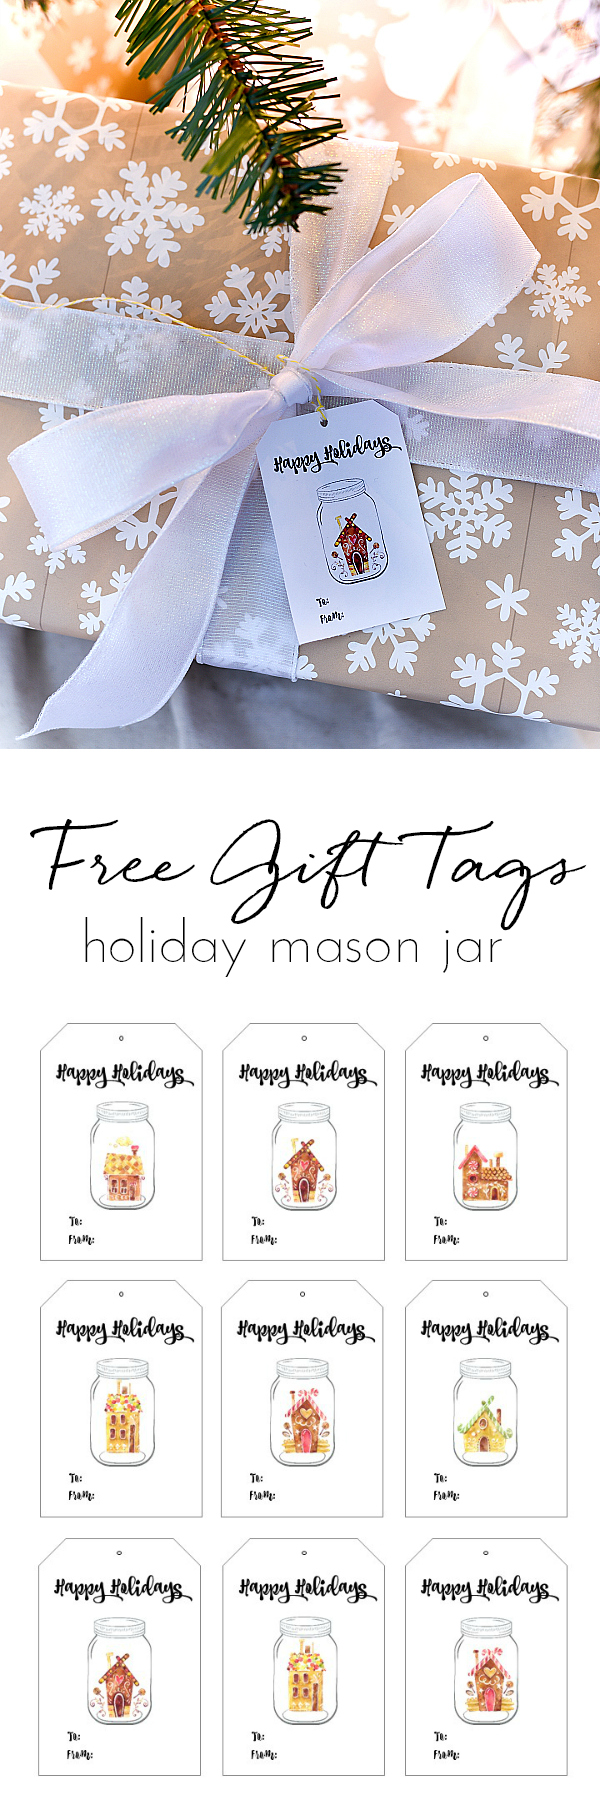 Free Printable Holiday Gift Tags - Mason Jar Holiday Gift Tags